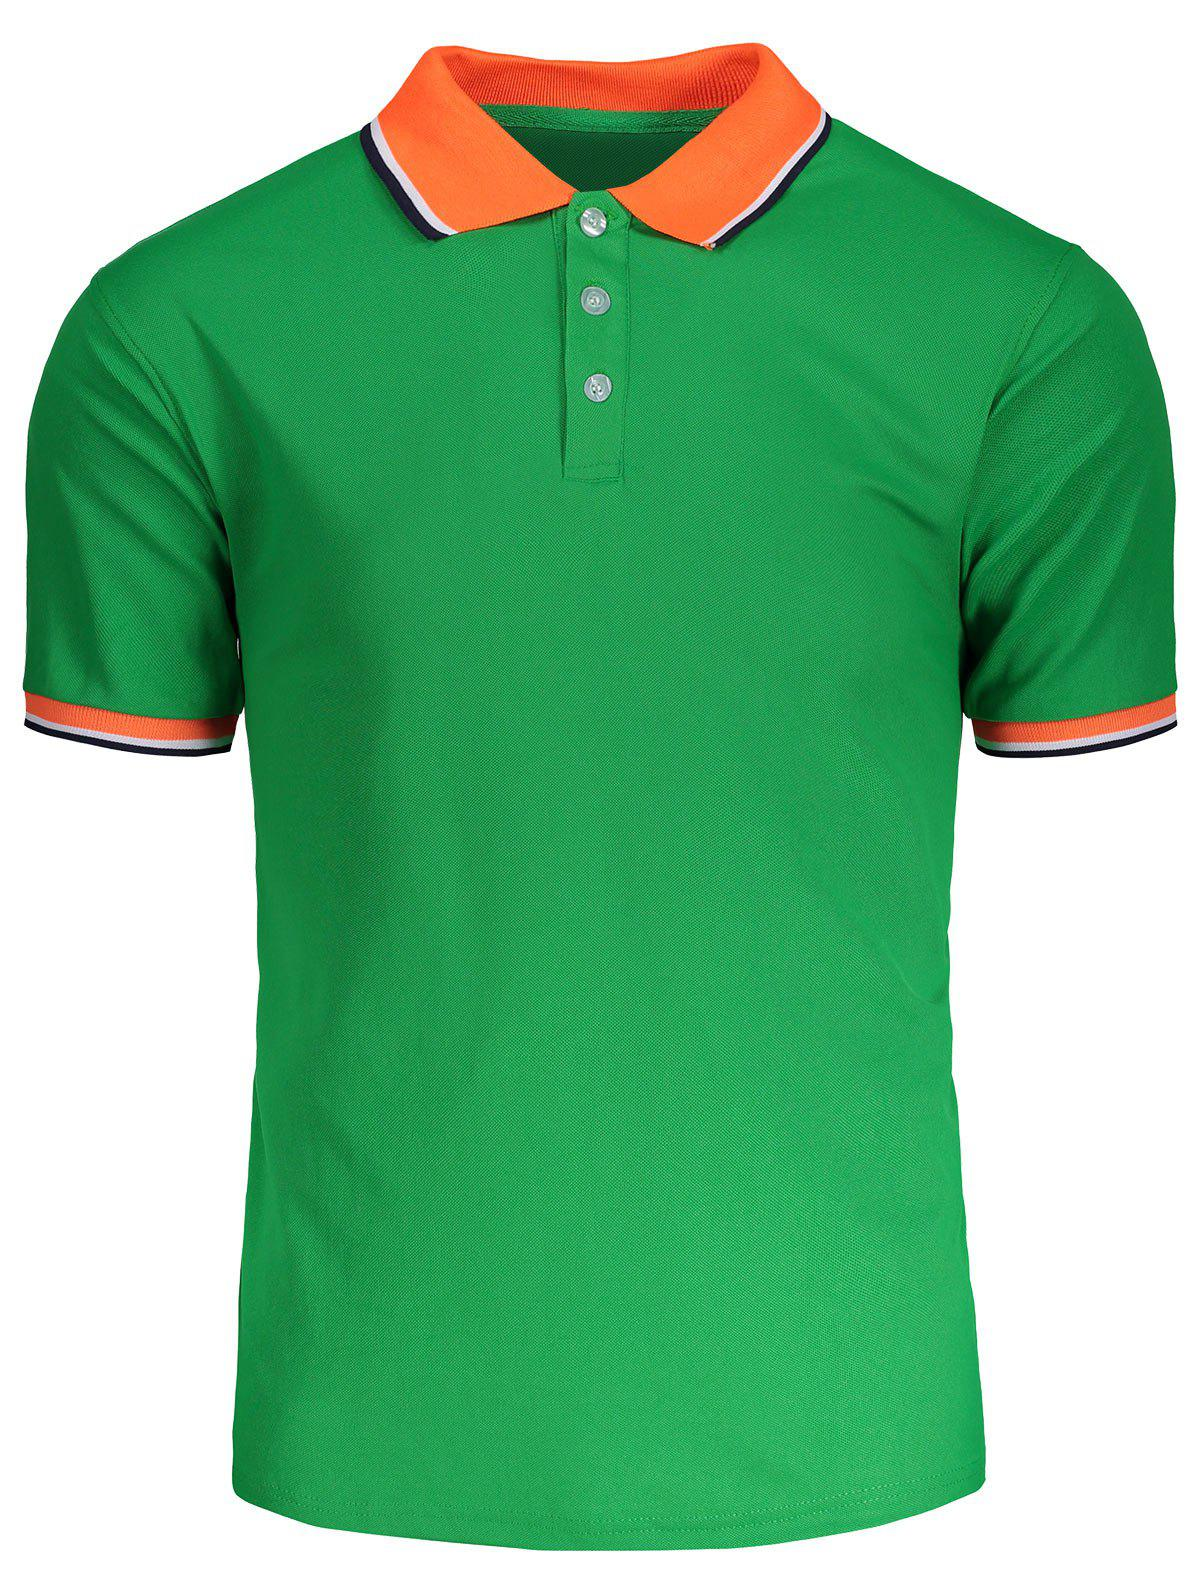 Turndown collar color block polo shirt green xl in t for Polo color block shirt